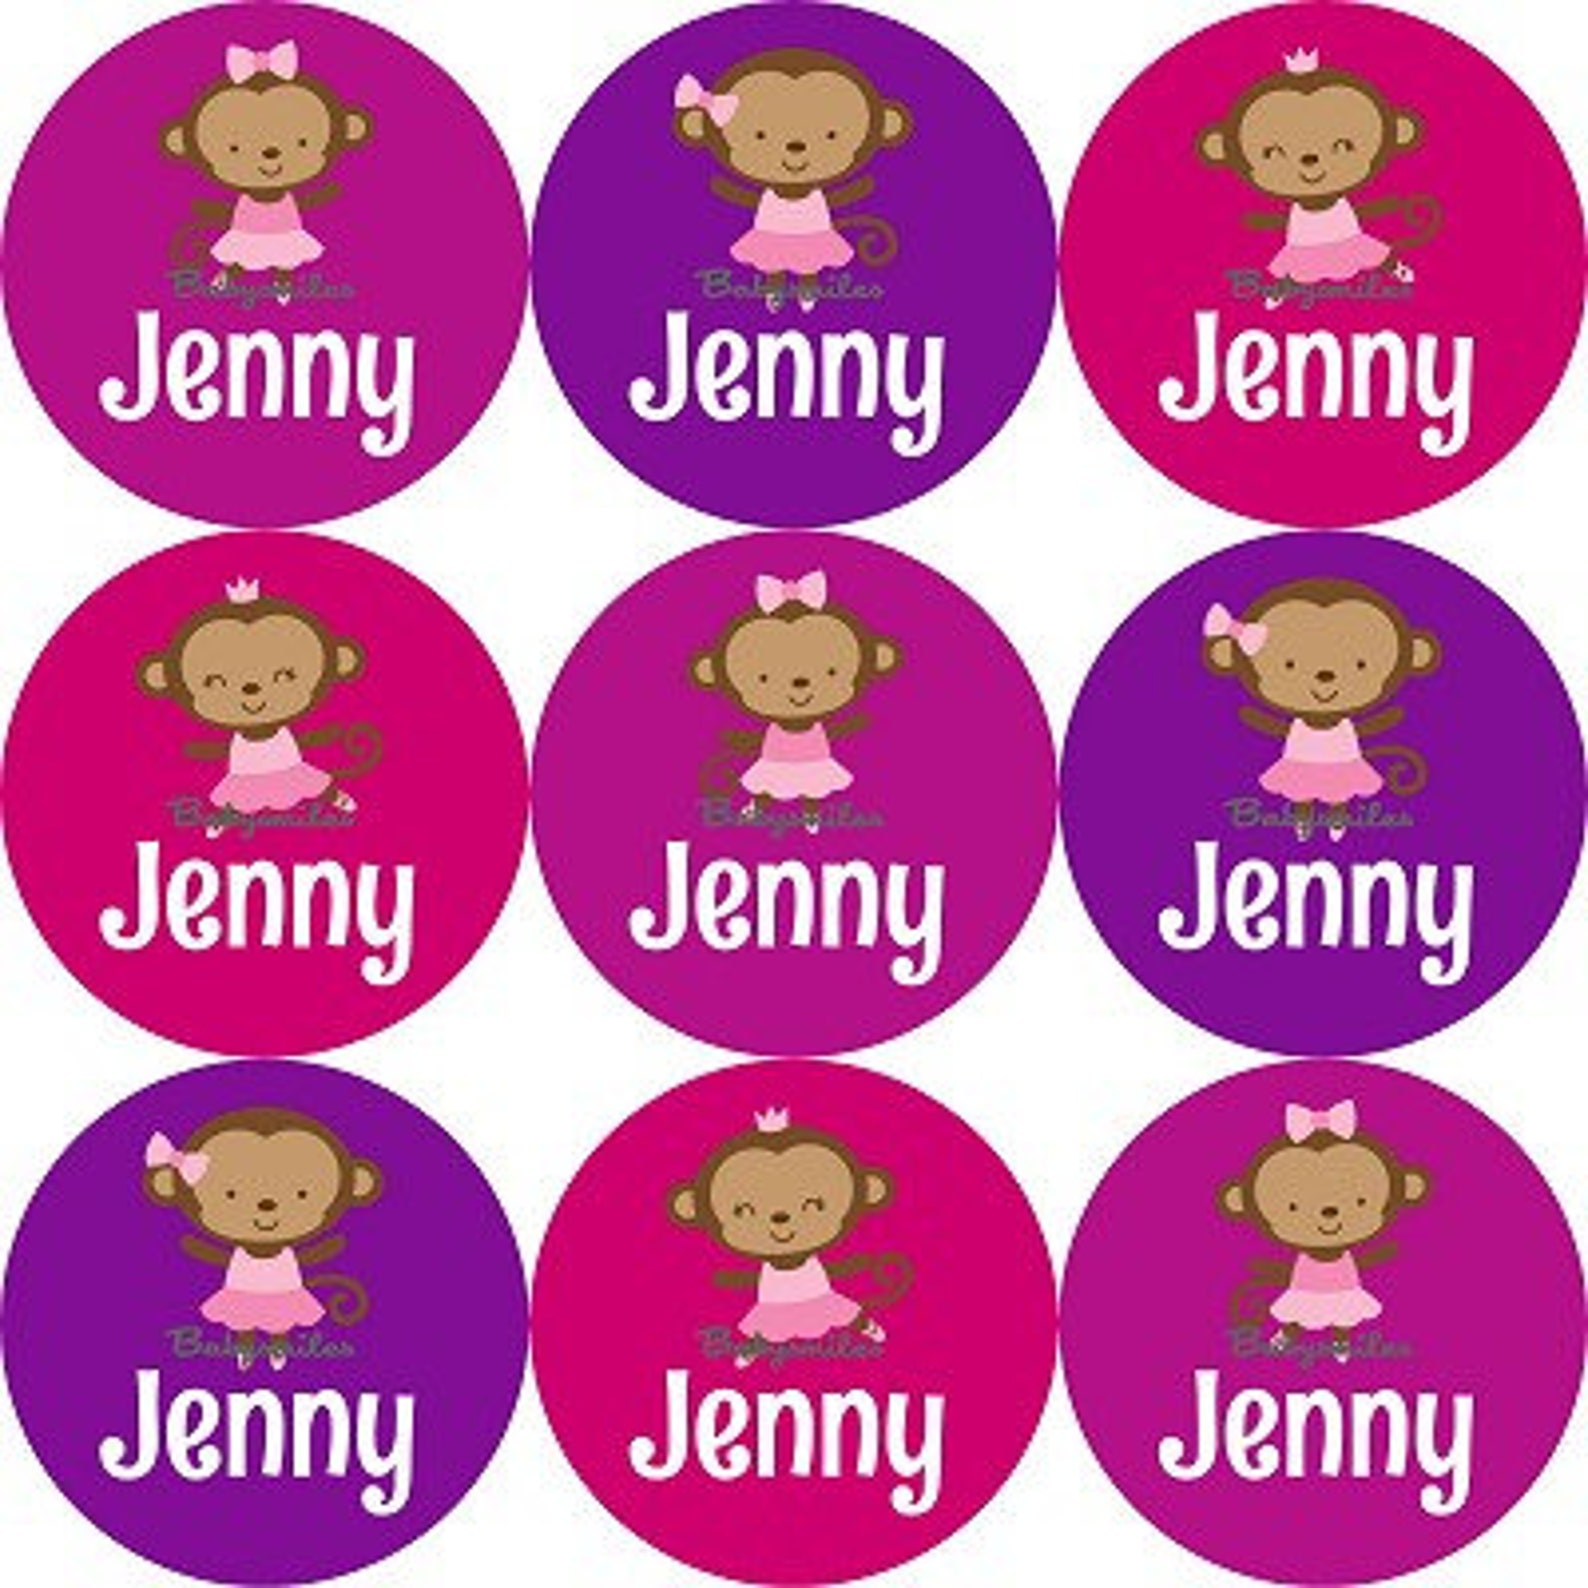 personalized waterproof shoe labels name label kids label daycare label school label baby labels shoe stickers - monkey ballet